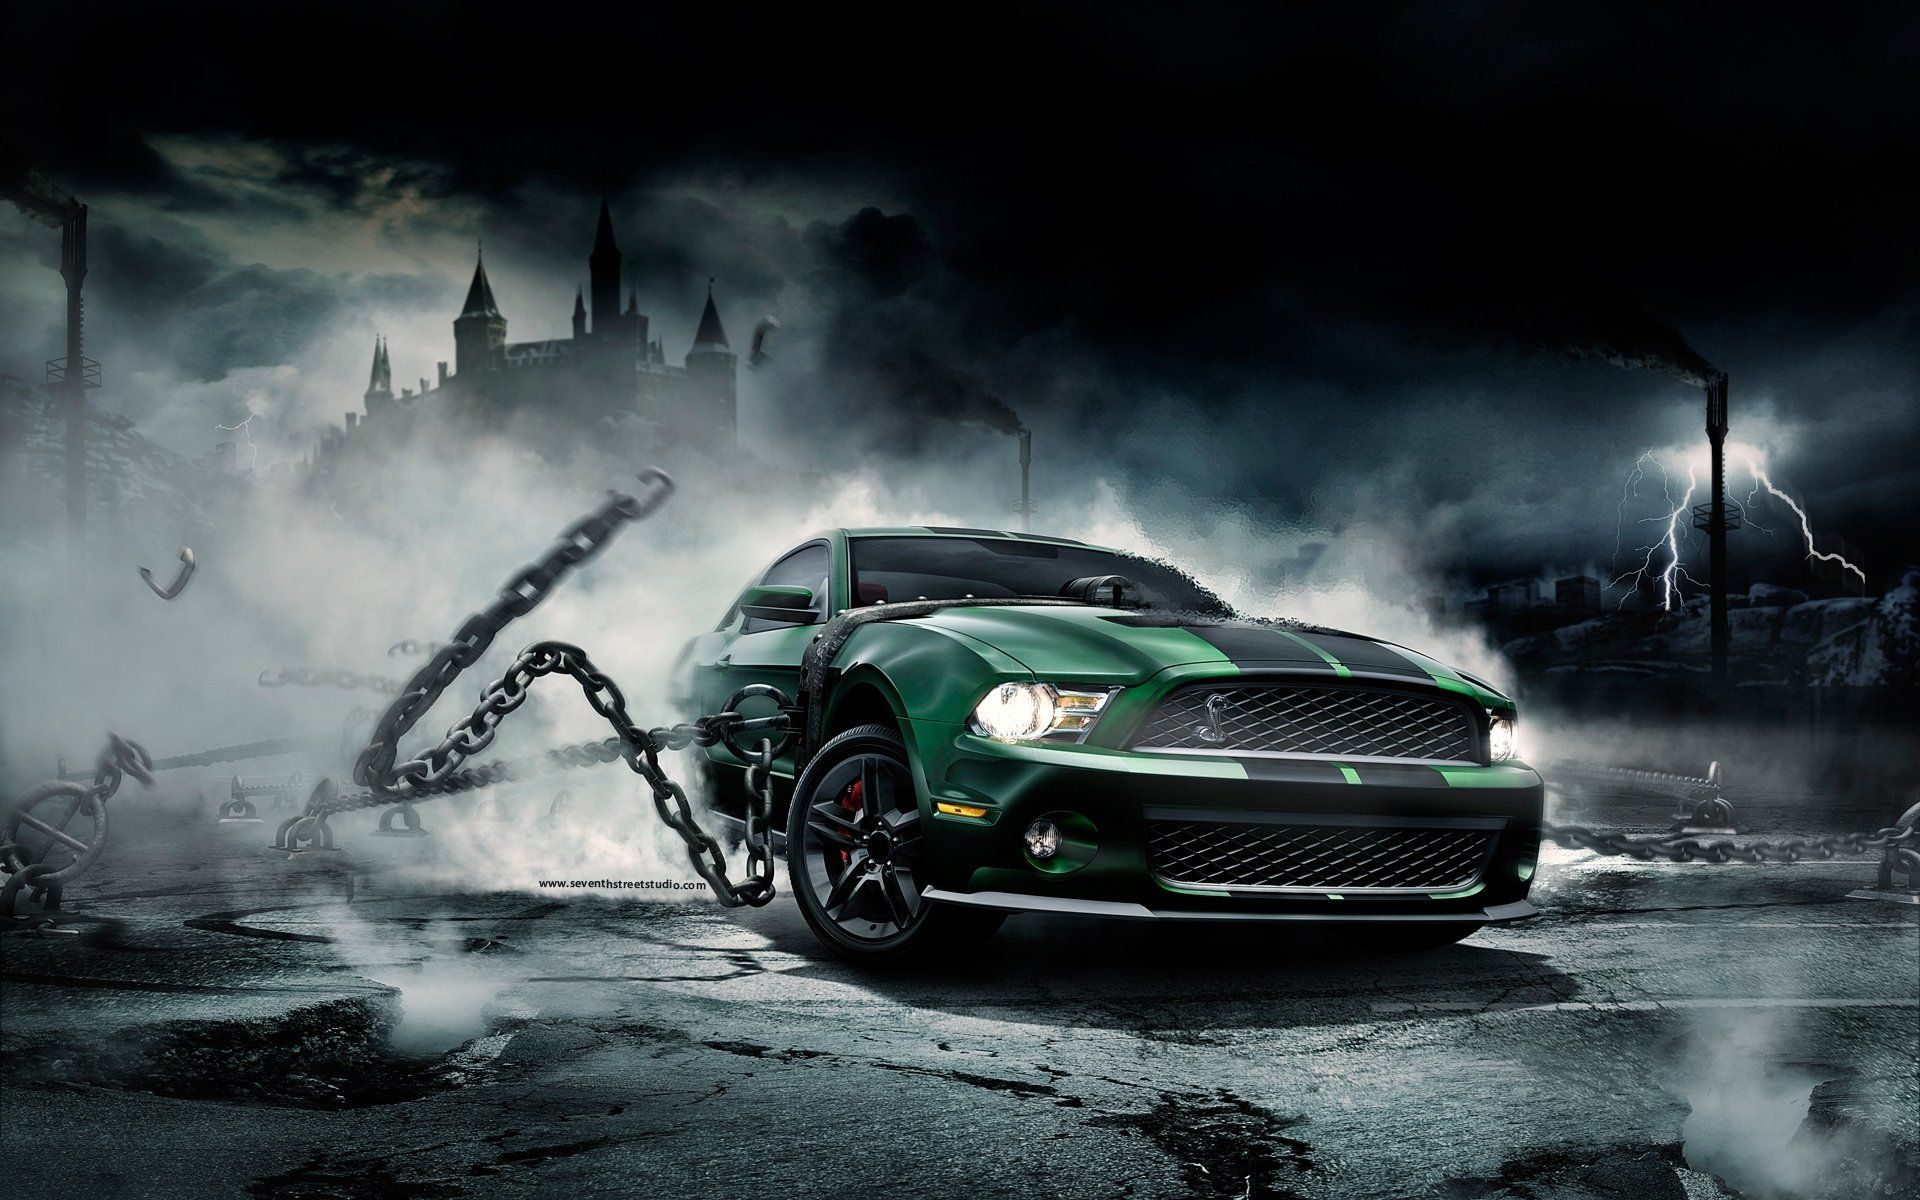 Ford Mustang Backgrounds Ford Mustang Wallpaper Mustang Wallpaper Car Wallpapers